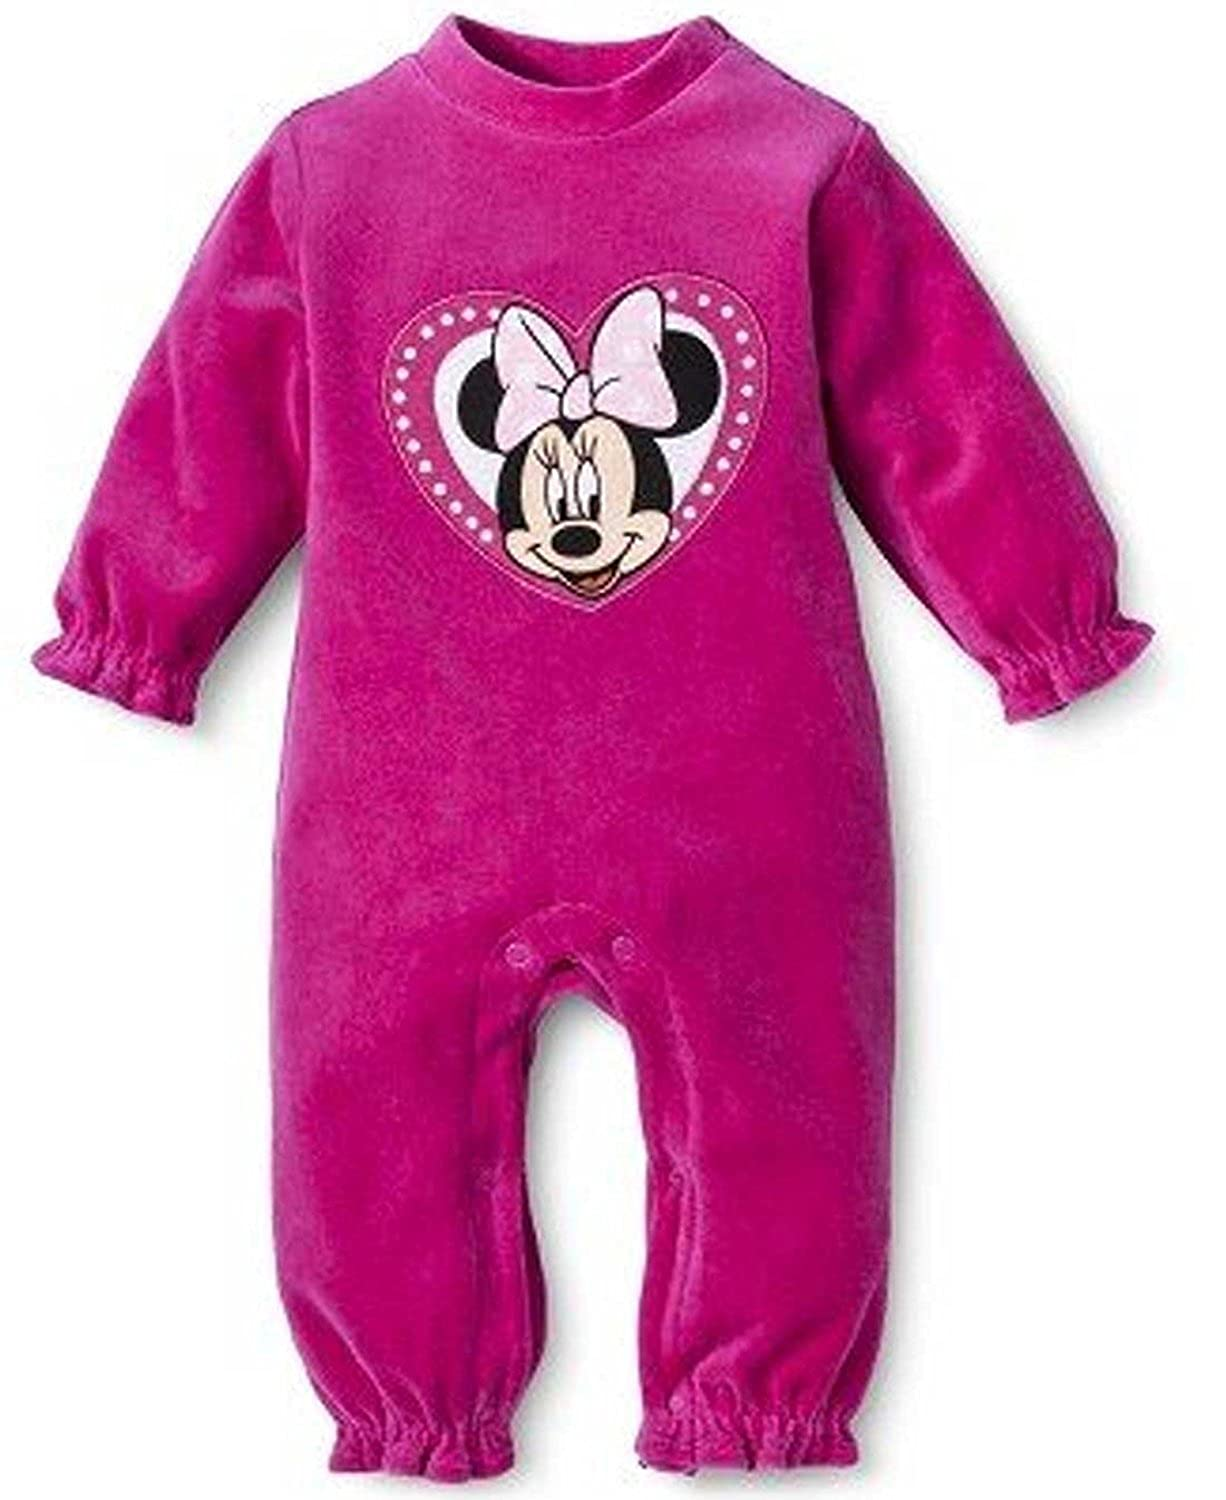 e7c76b159 Amazon.com  Disney Minnie Mouse Baby Girls  Infant Velour Jumpsuit ...